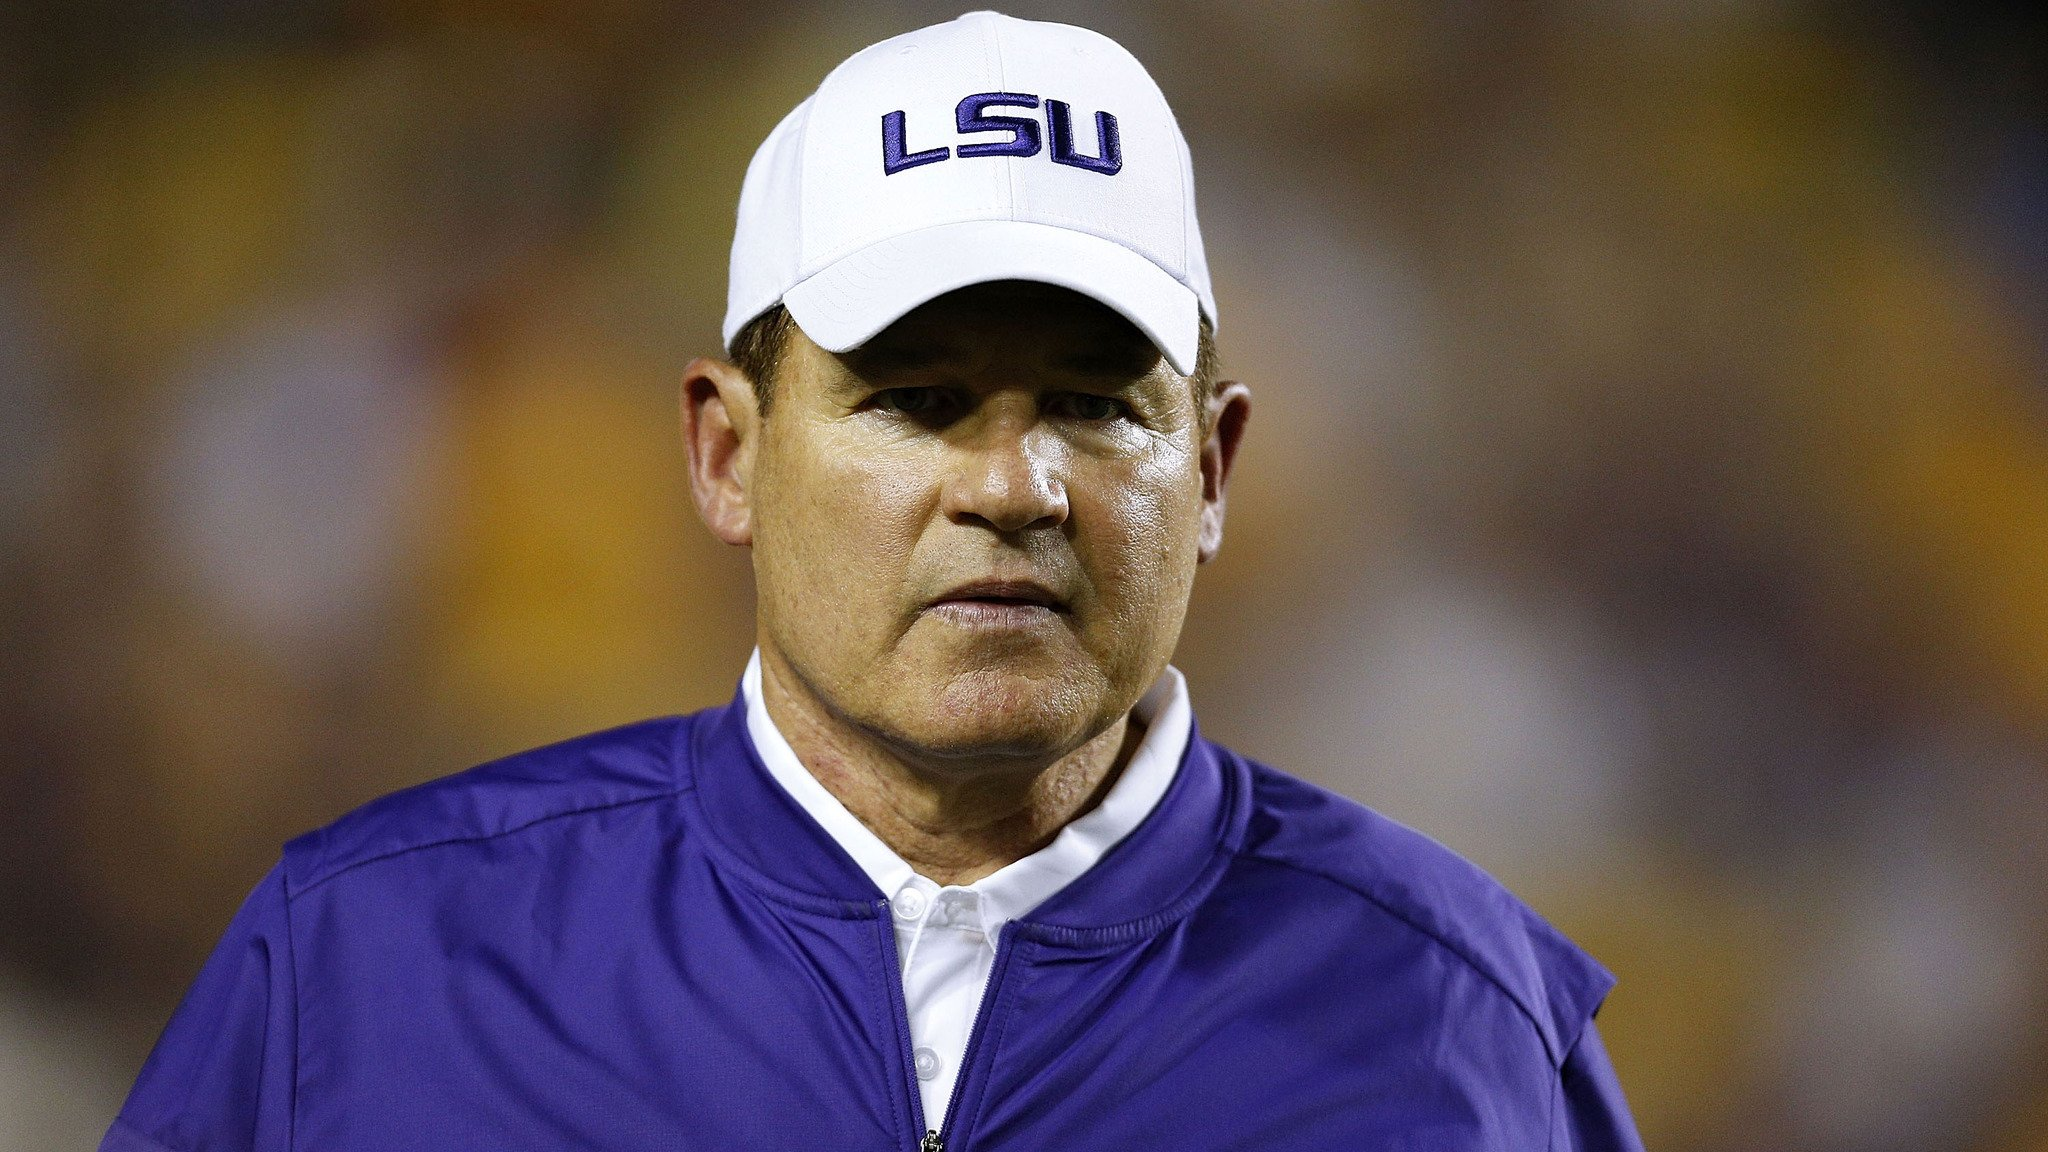 Is Les Miles open to considering Western Michigan job? https://t.co/RsY8uZPx7R https://t.co/m7WA7gnLhZ